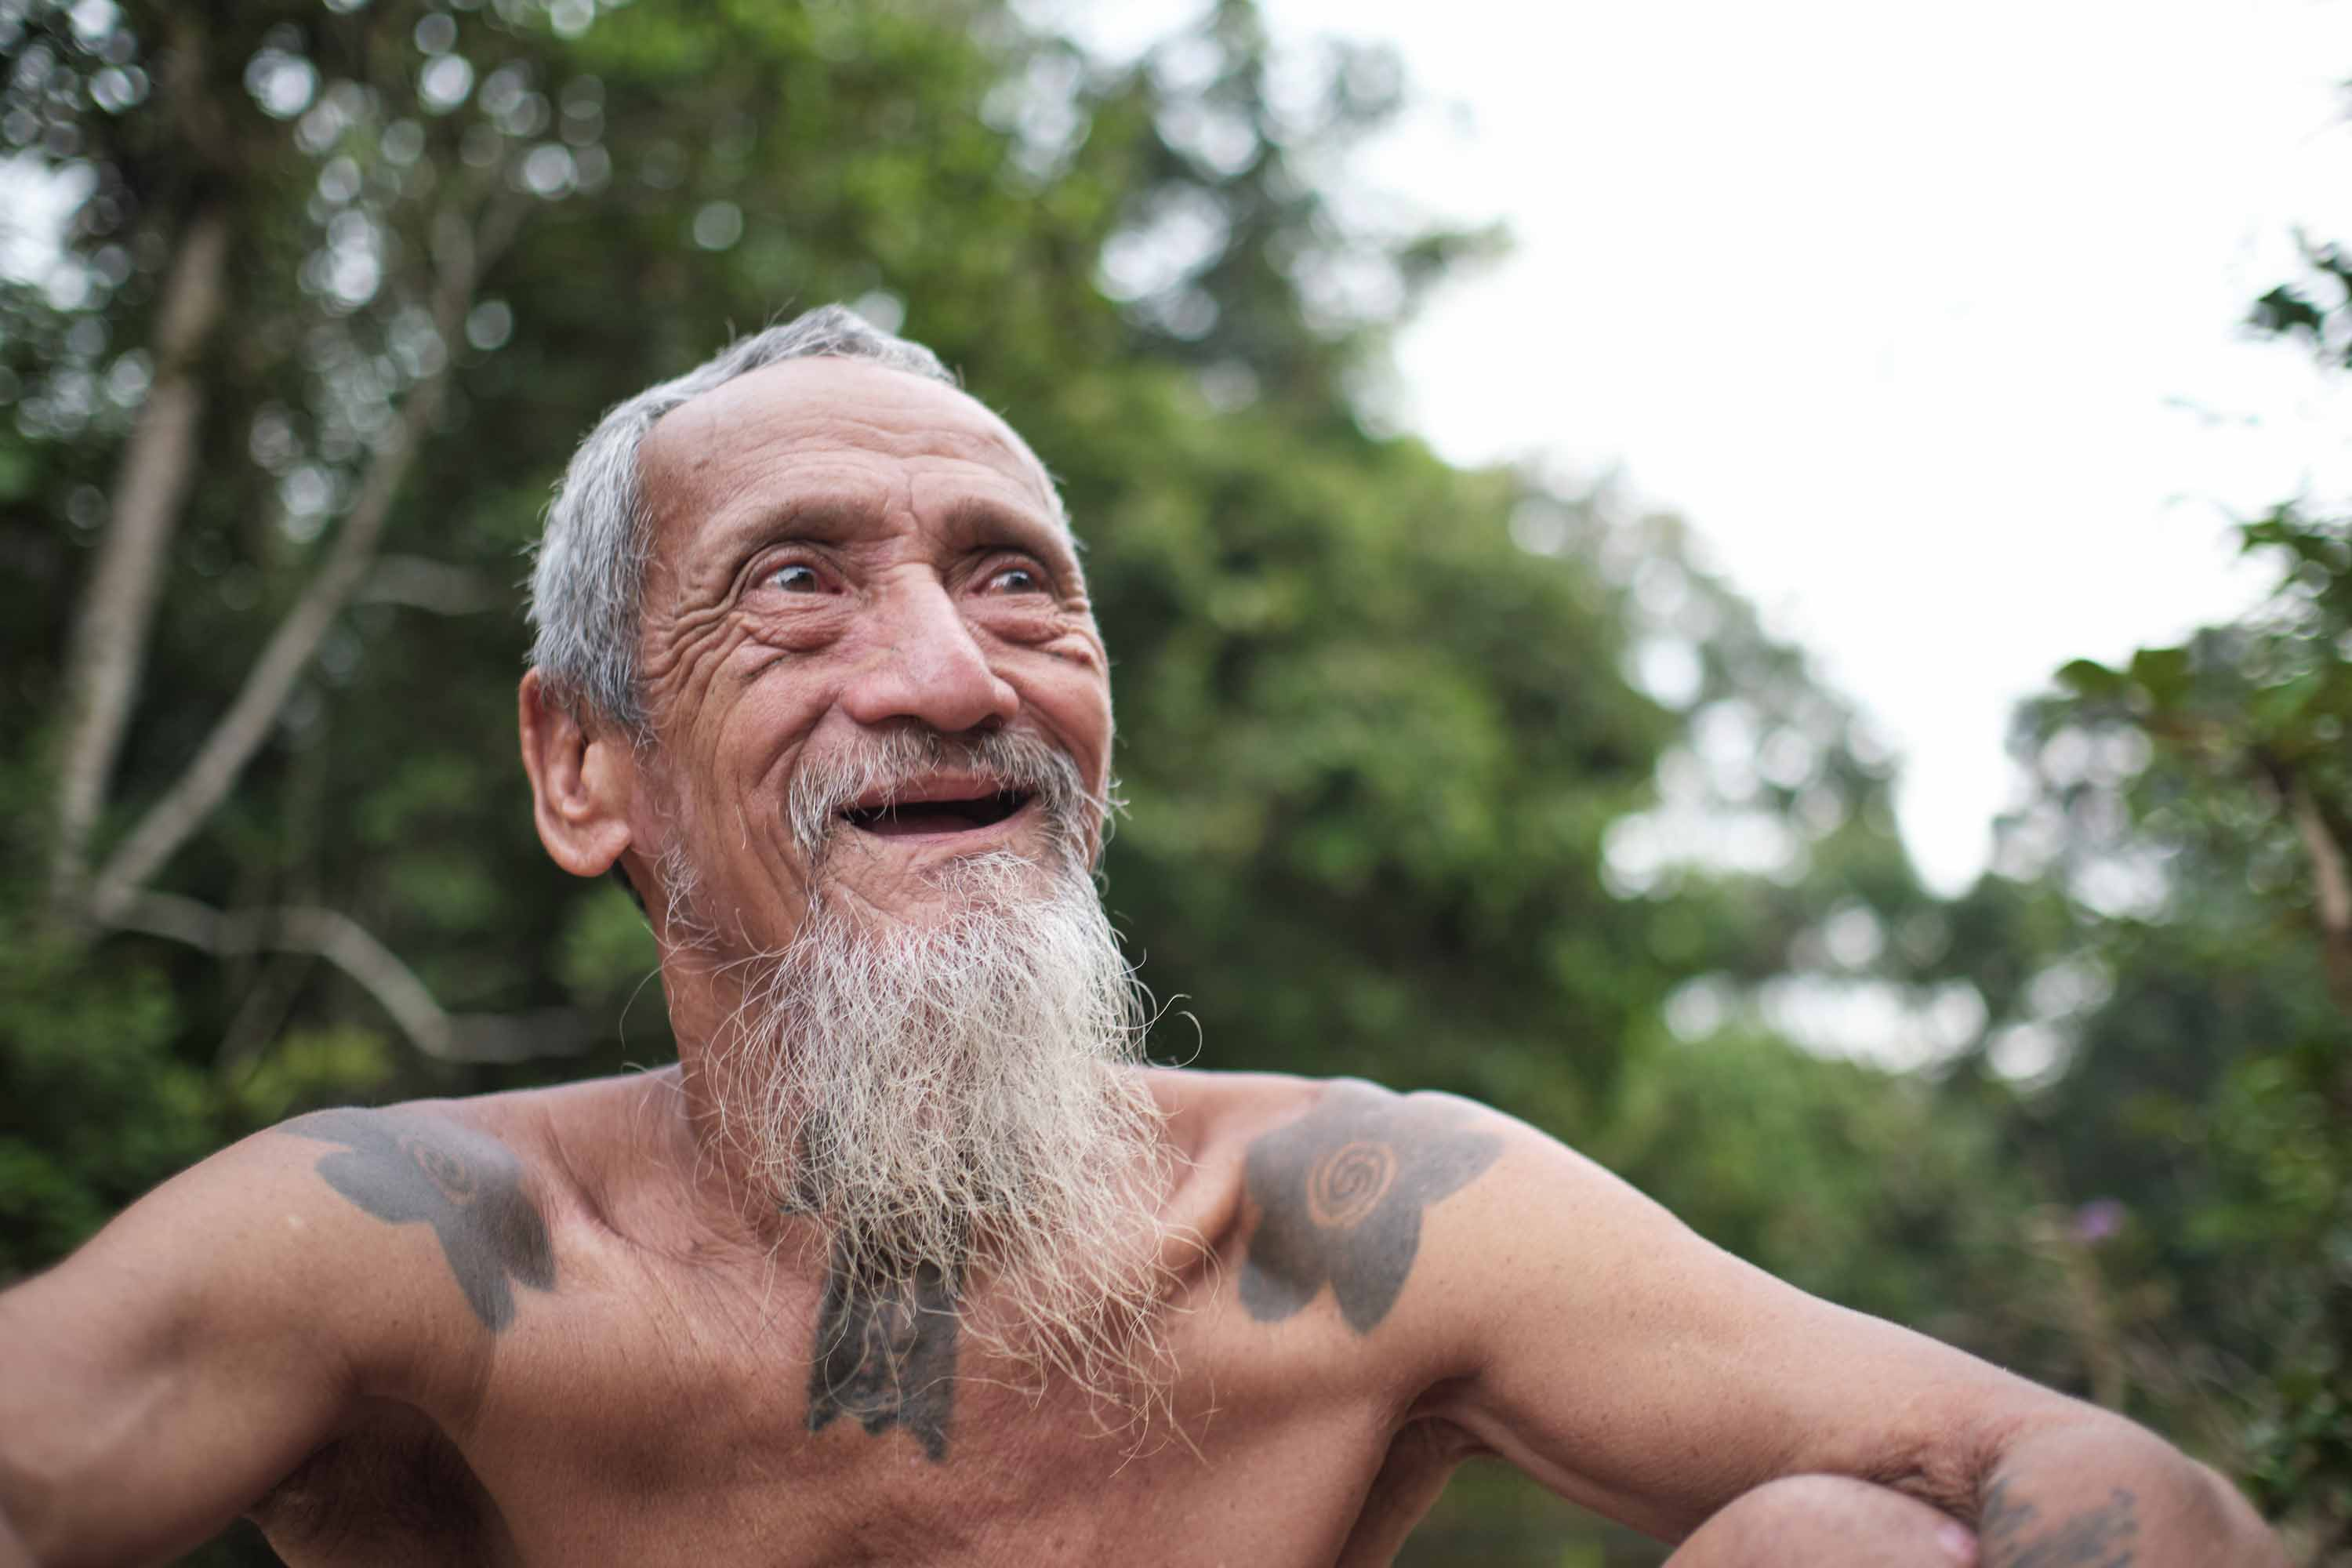 Shirtless Sungai Utik elder Apai Janggut with short gray hair and long gray beard smiles while looking off camera